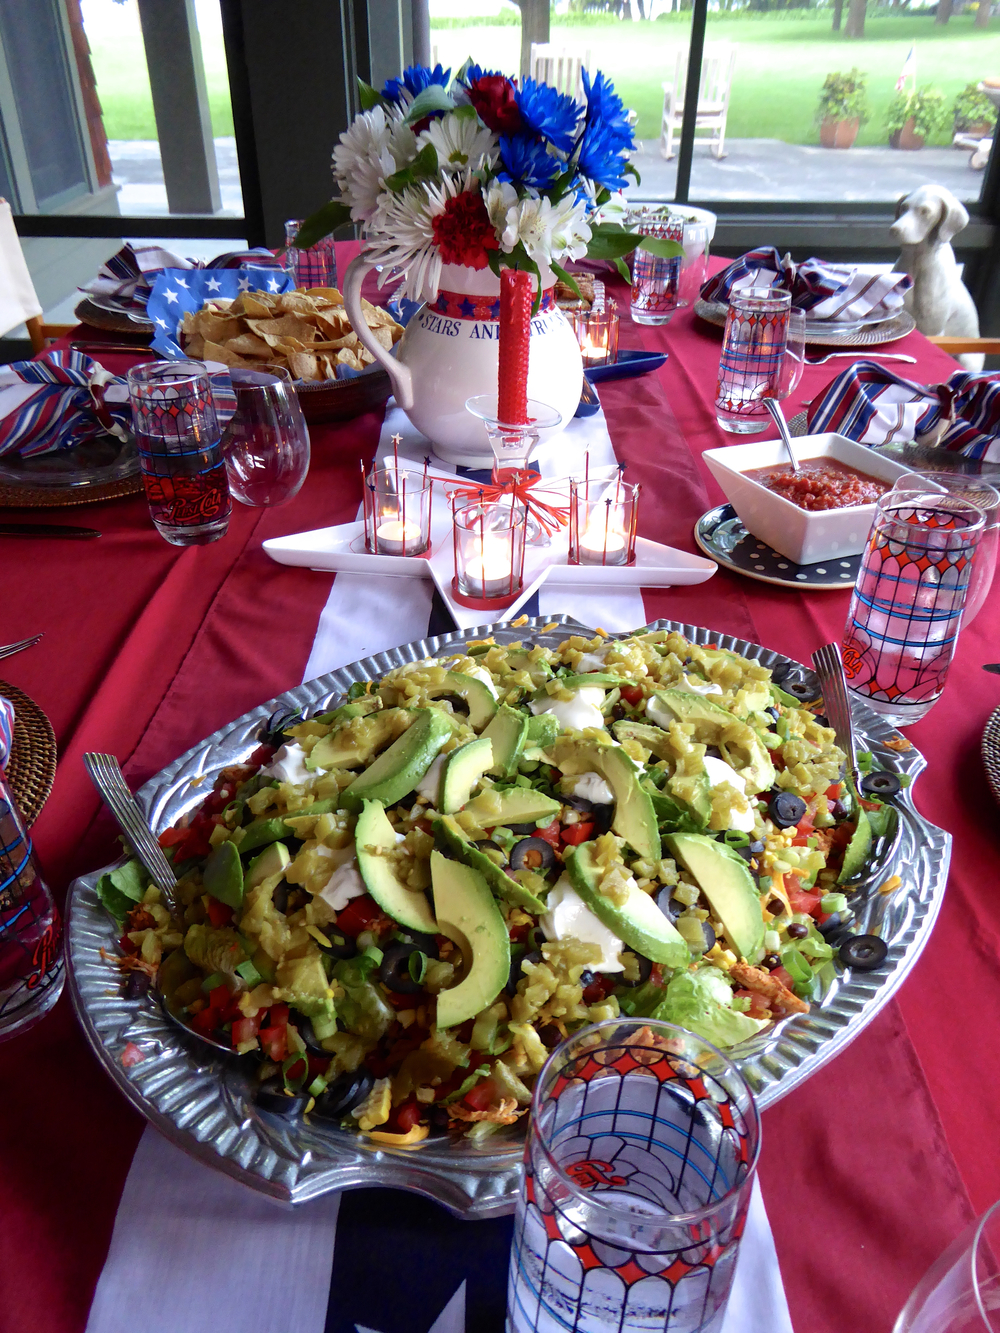 4thJuly_tabletop_Sue_spiritedtable_photo04.jpg